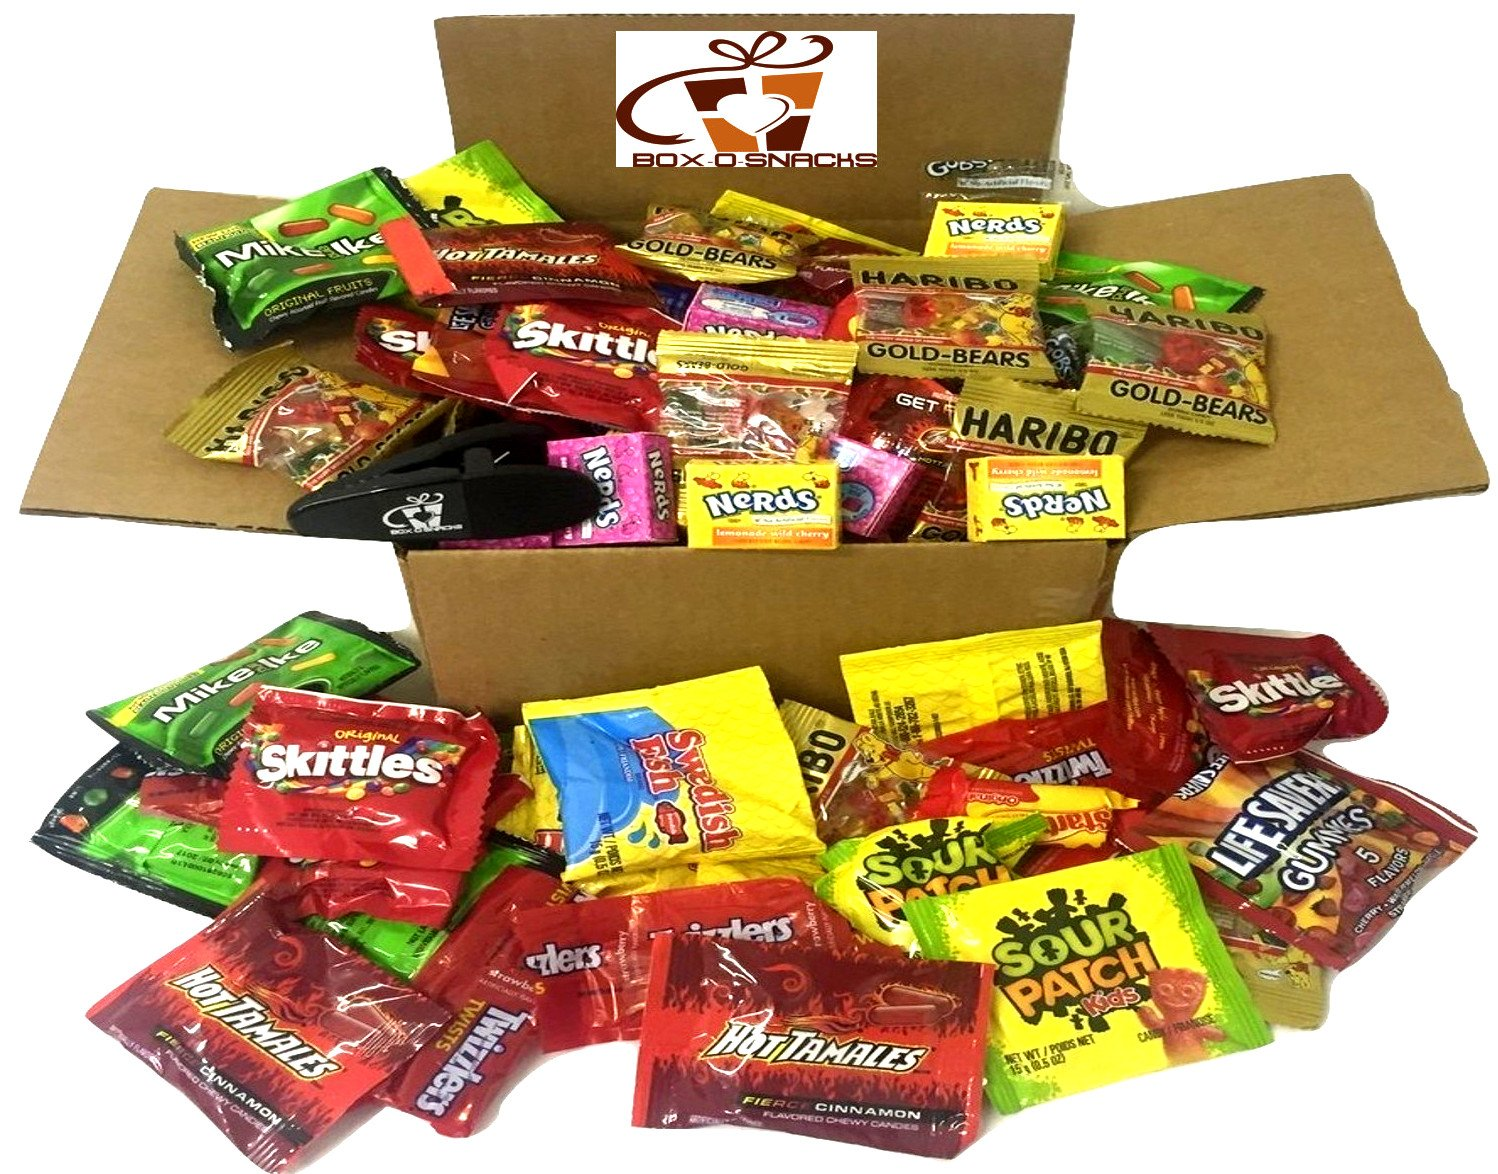 Box-O-Snacks Super Candy Variety Box 3 Pounds of Candy by The Snack Pack Co (Image #1)